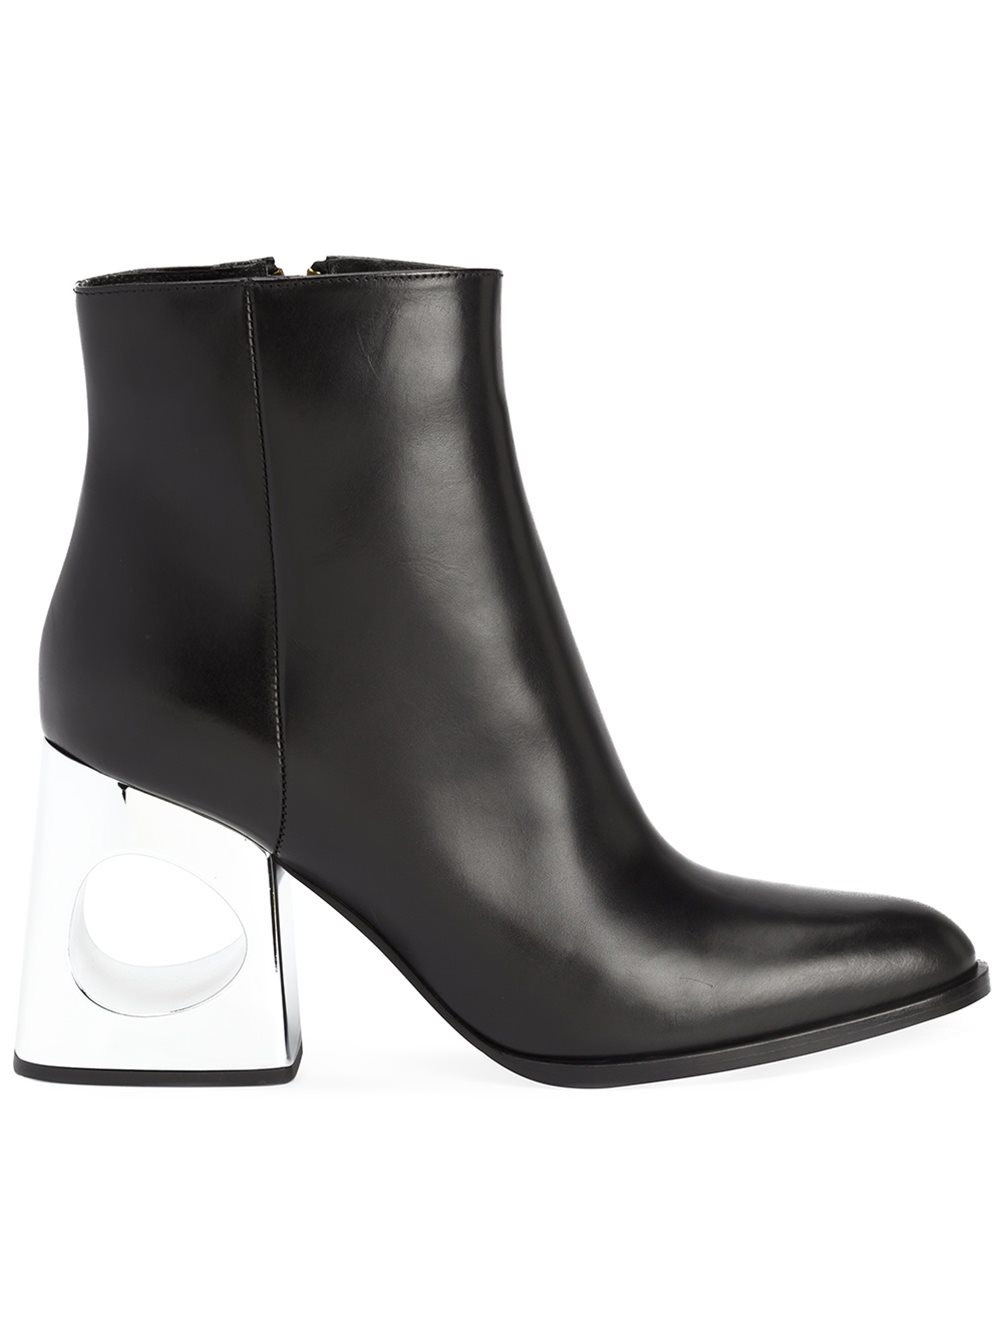 marni cut out heel boots in black lyst